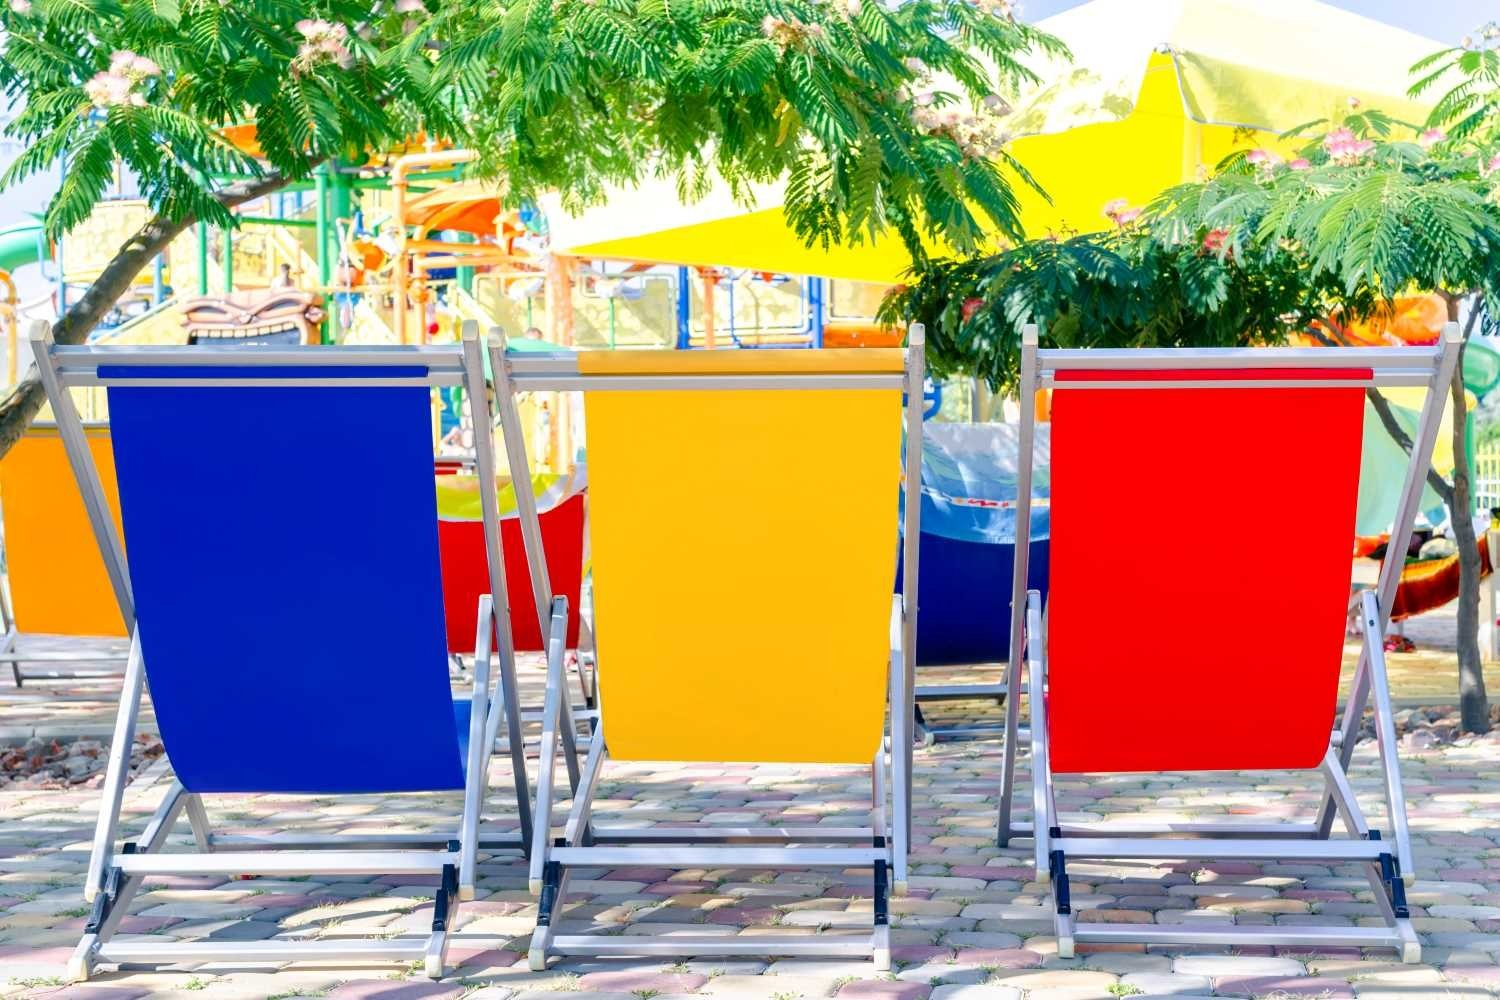 Pool loungers in 3 bright colors - blue, yellow, red example image 1